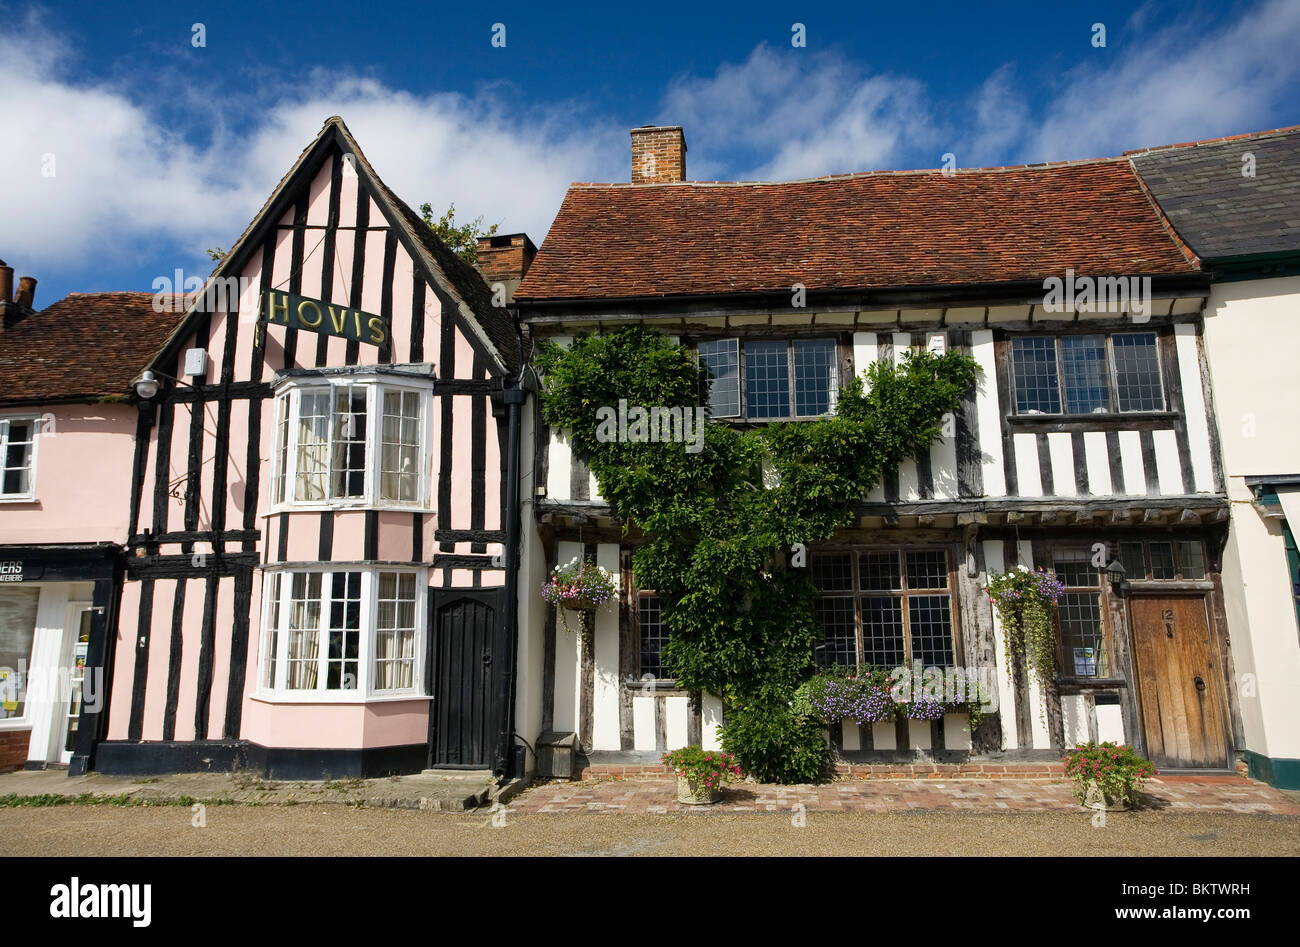 The Bakery in Lavenham Suffolk - Stock Image